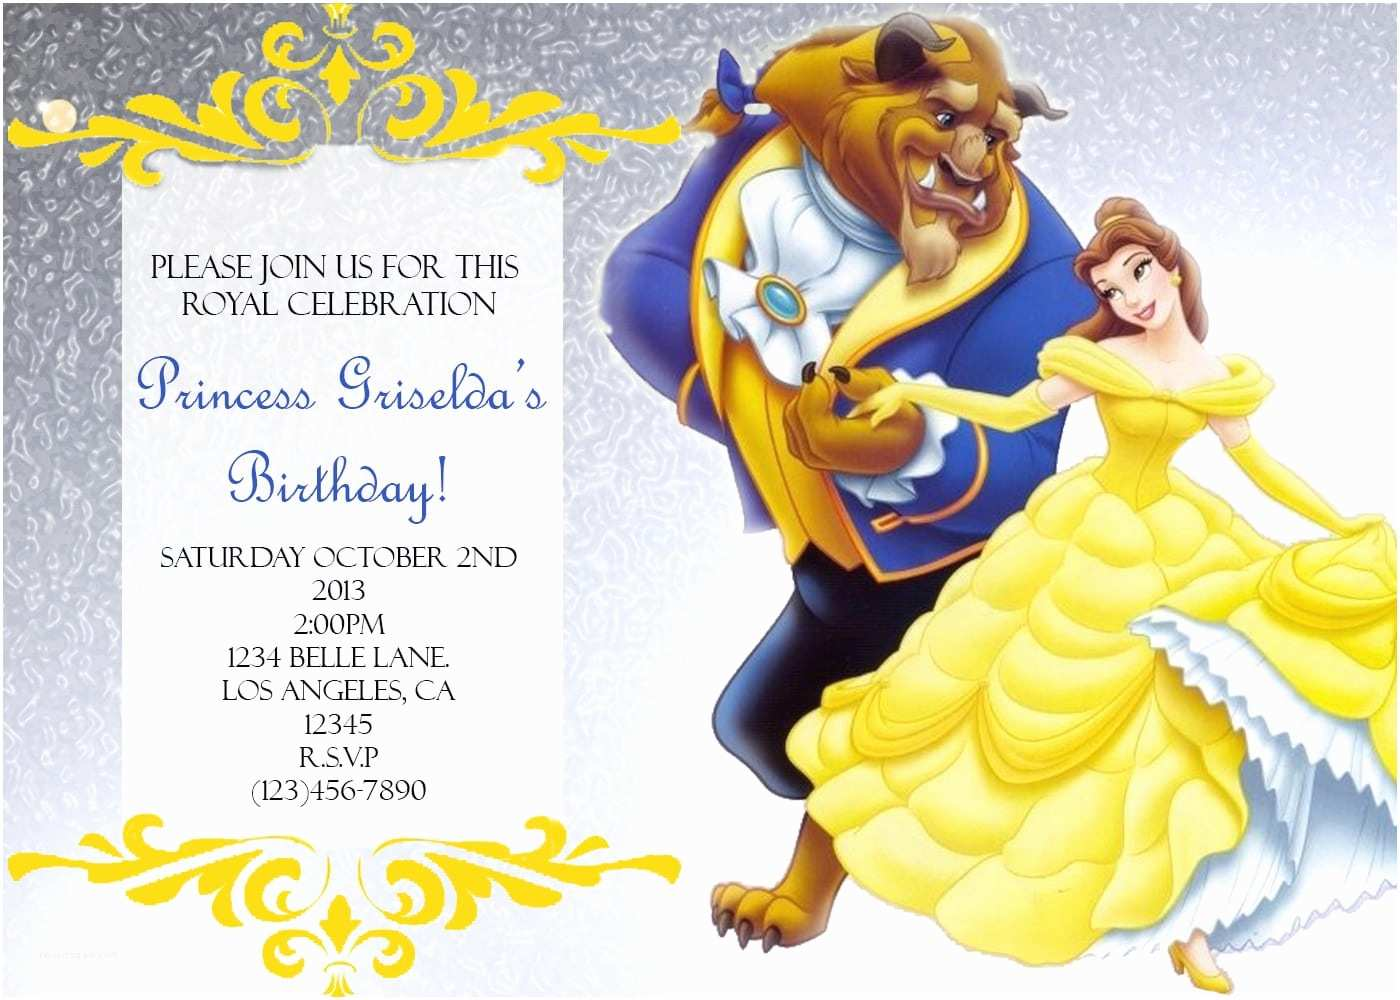 Beauty and the Beast Party Invitations Beauty and the Beast Party Invitations Mickey Mouse